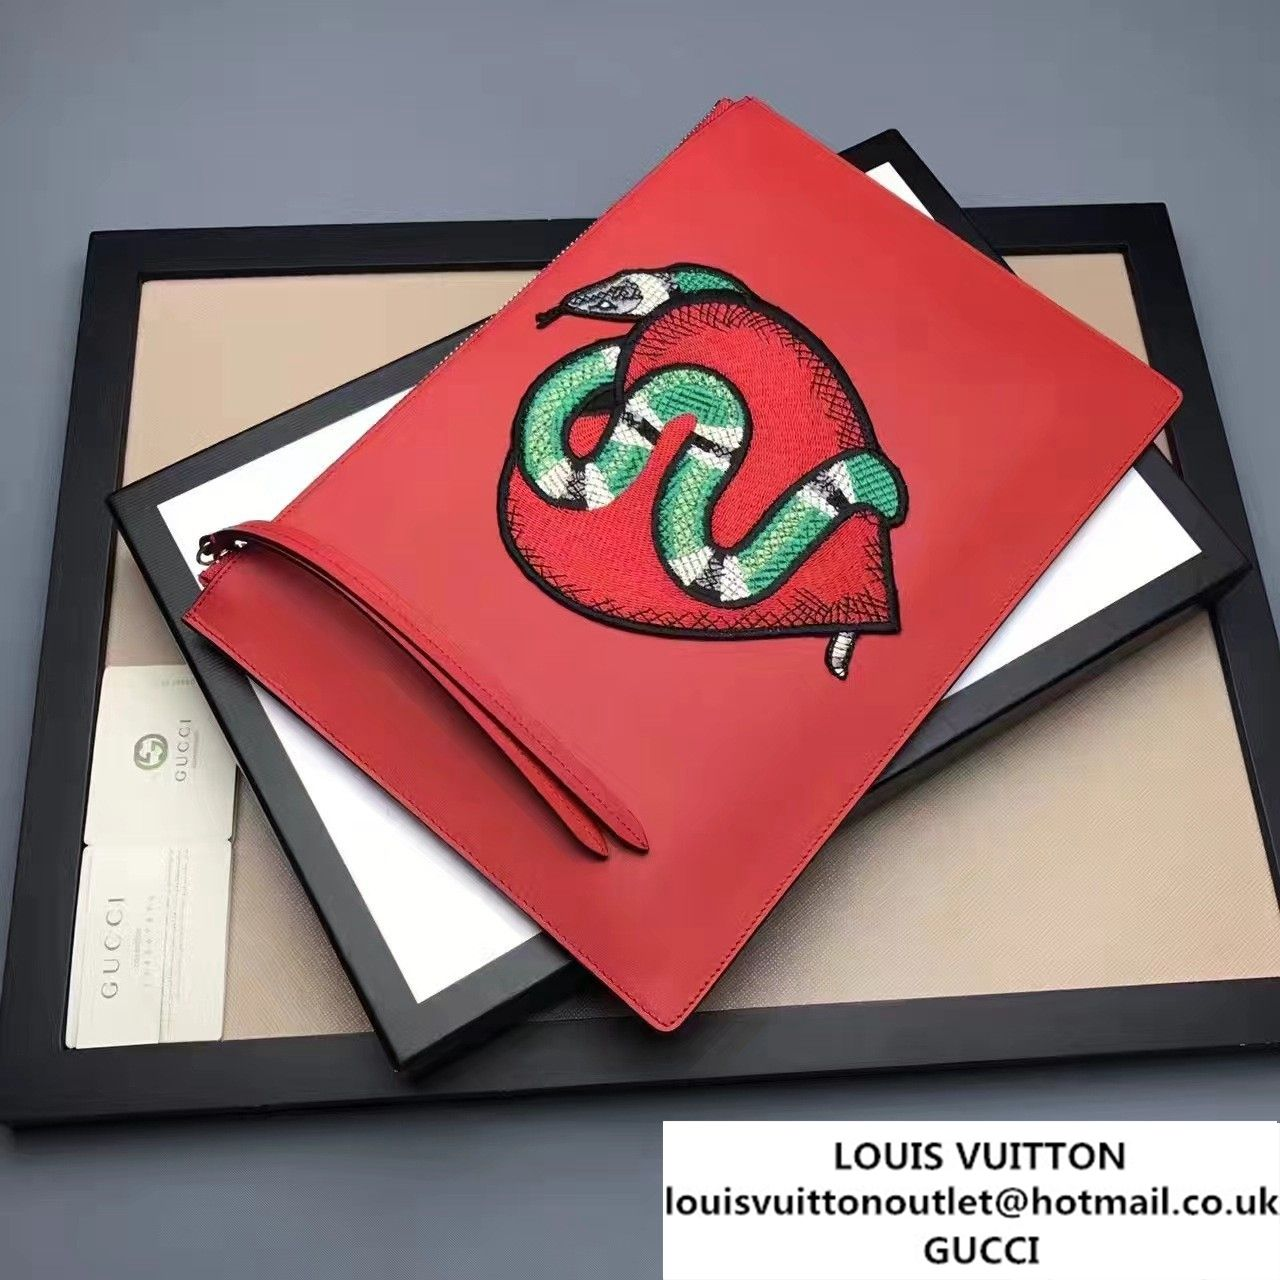 fb38cc8fec6 Gucci Leather Zip Pouch Clutch Bag 456864 Red Limited Edition Embroidered  Heart And Snake 2017